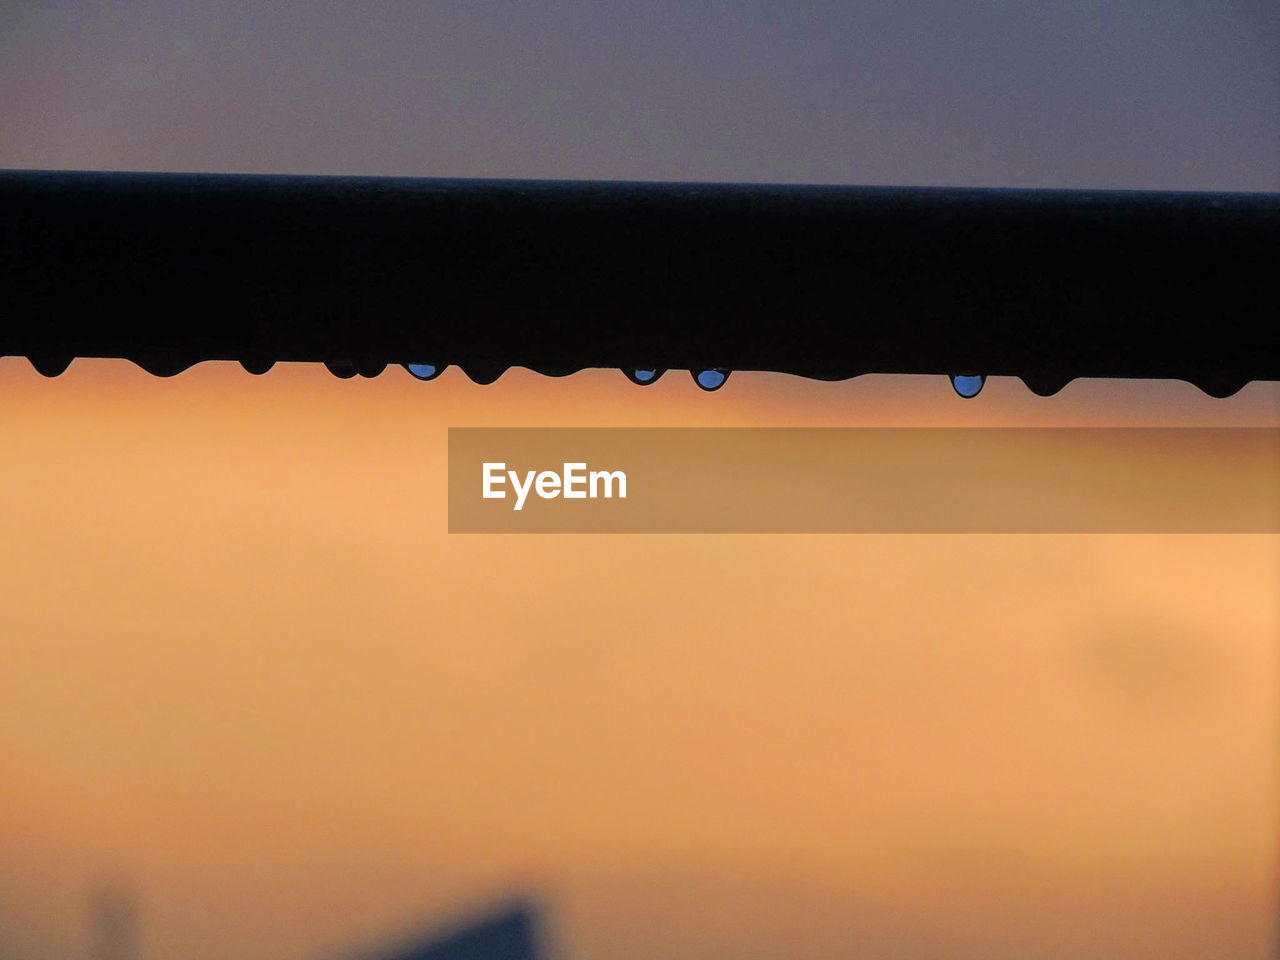 water, roof, no people, clear sky, drop, sunset, raindrop, close-up, silhouette, outdoors, sky, day, dripping, nature